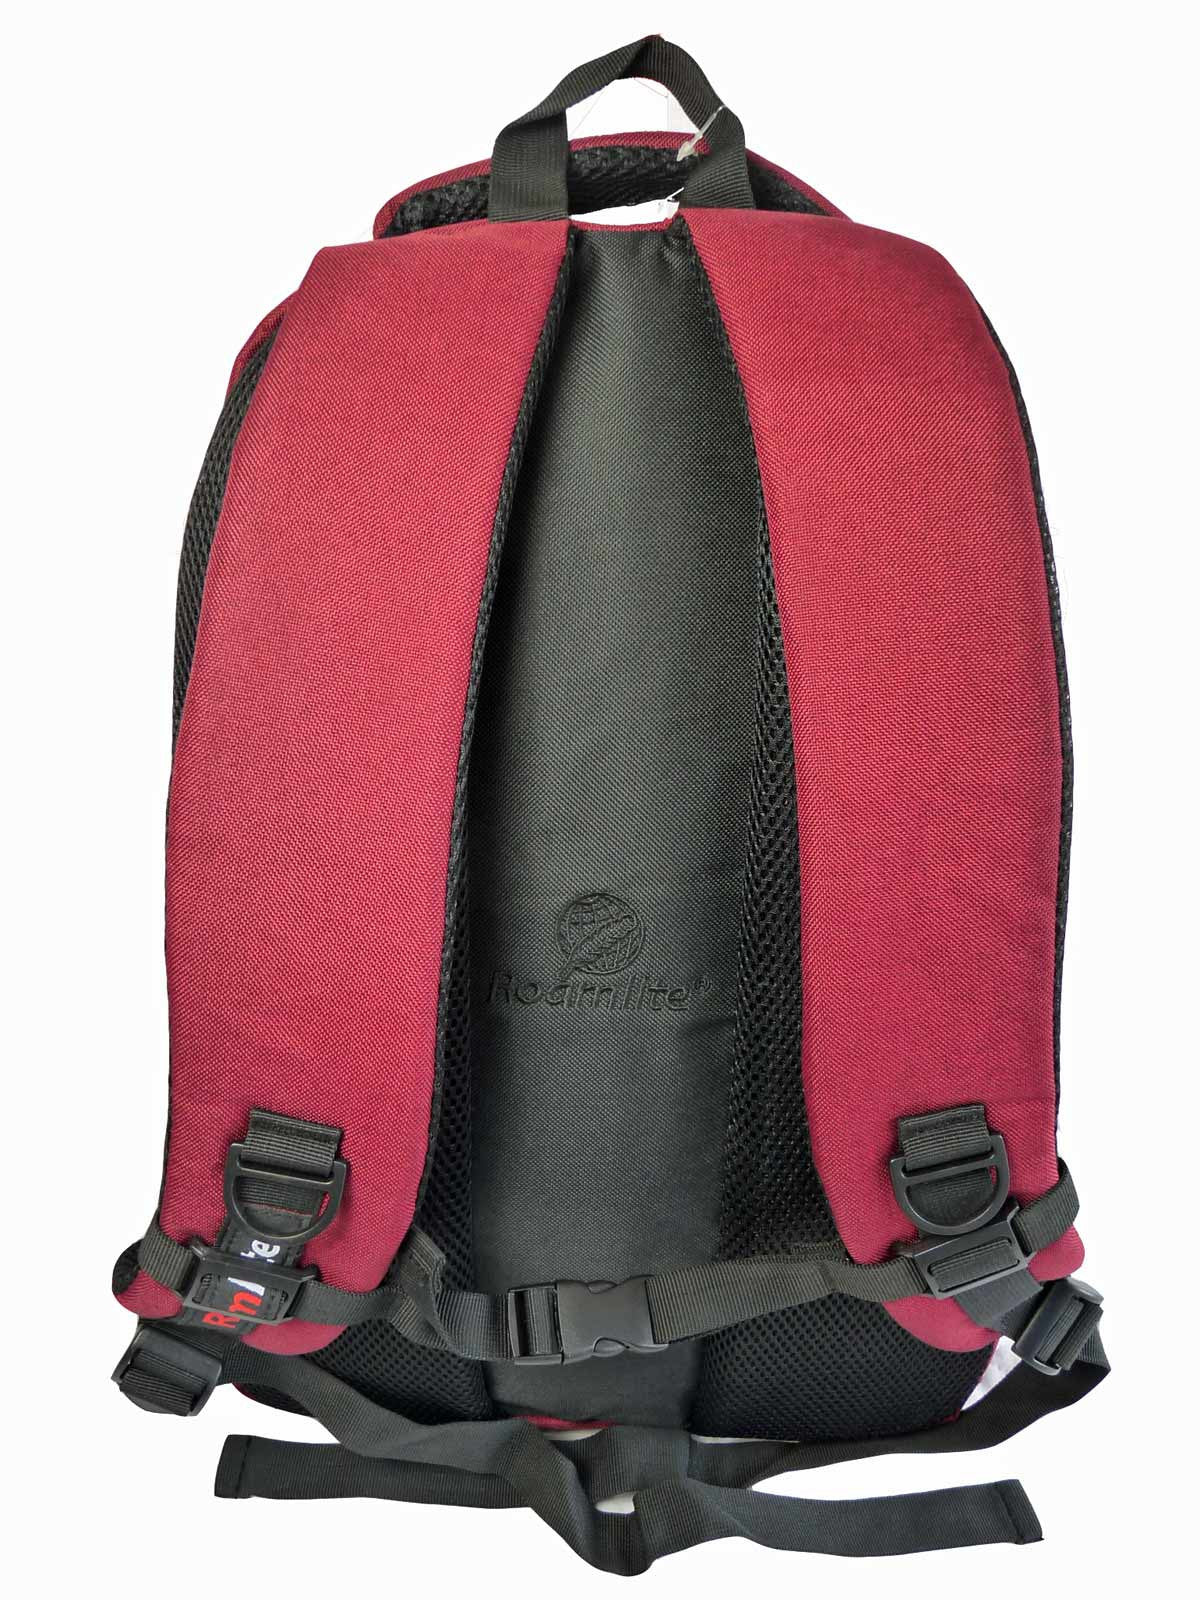 Laptop Macbook Backpack Rucksack Bag RL43Bu Rear View